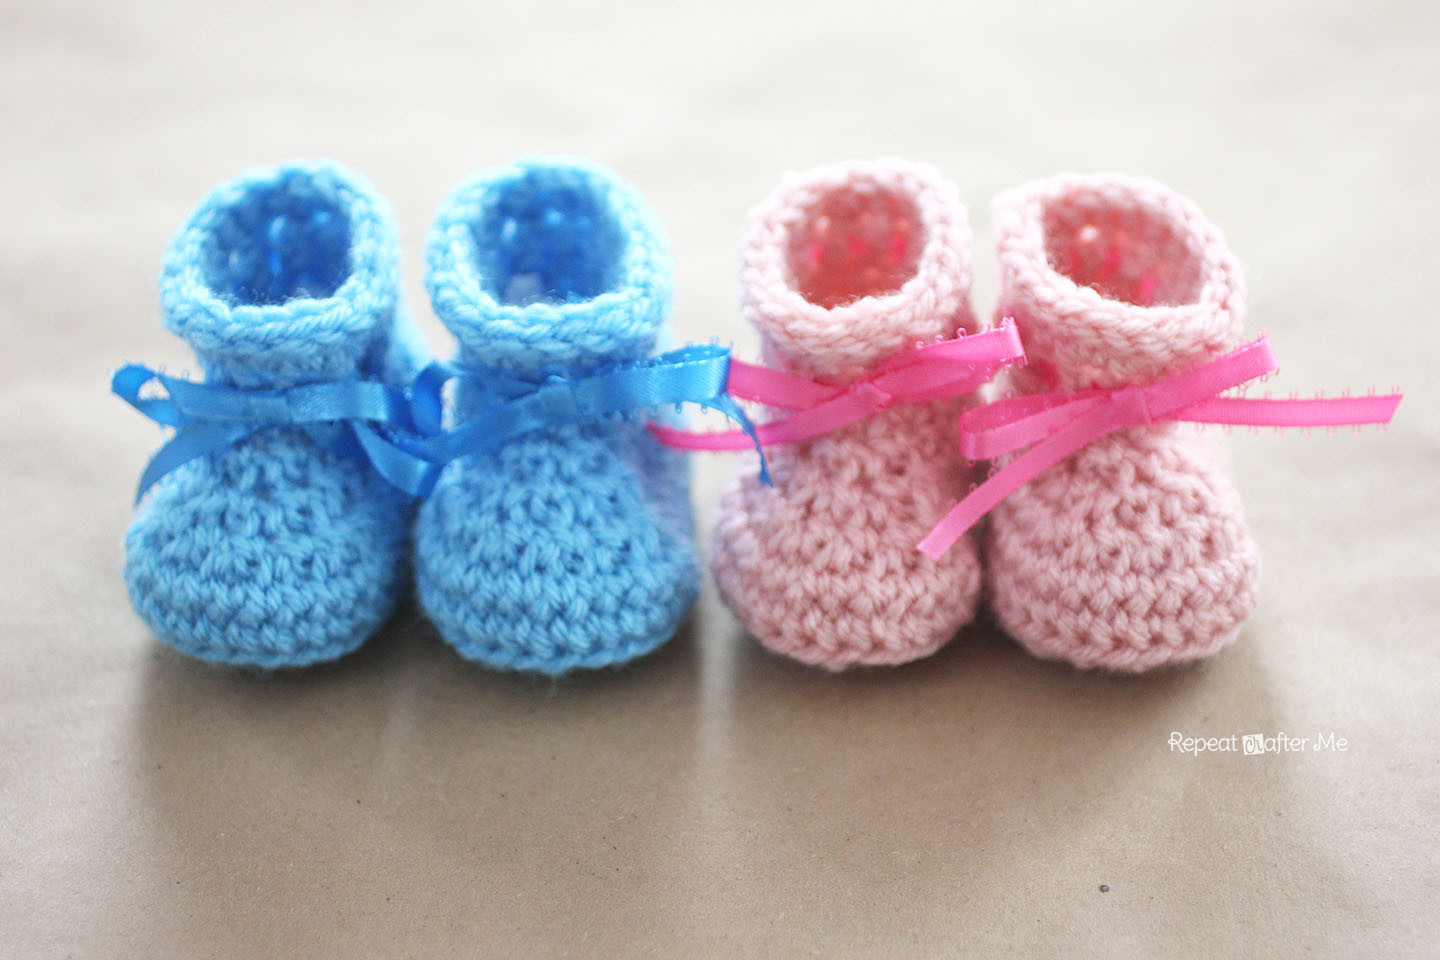 New Crochet Newborn Baby Booties Pattern Repeat Crafter Me Crochet Baby Boy Booties Of Luxury 45 Models Crochet Baby Boy Booties